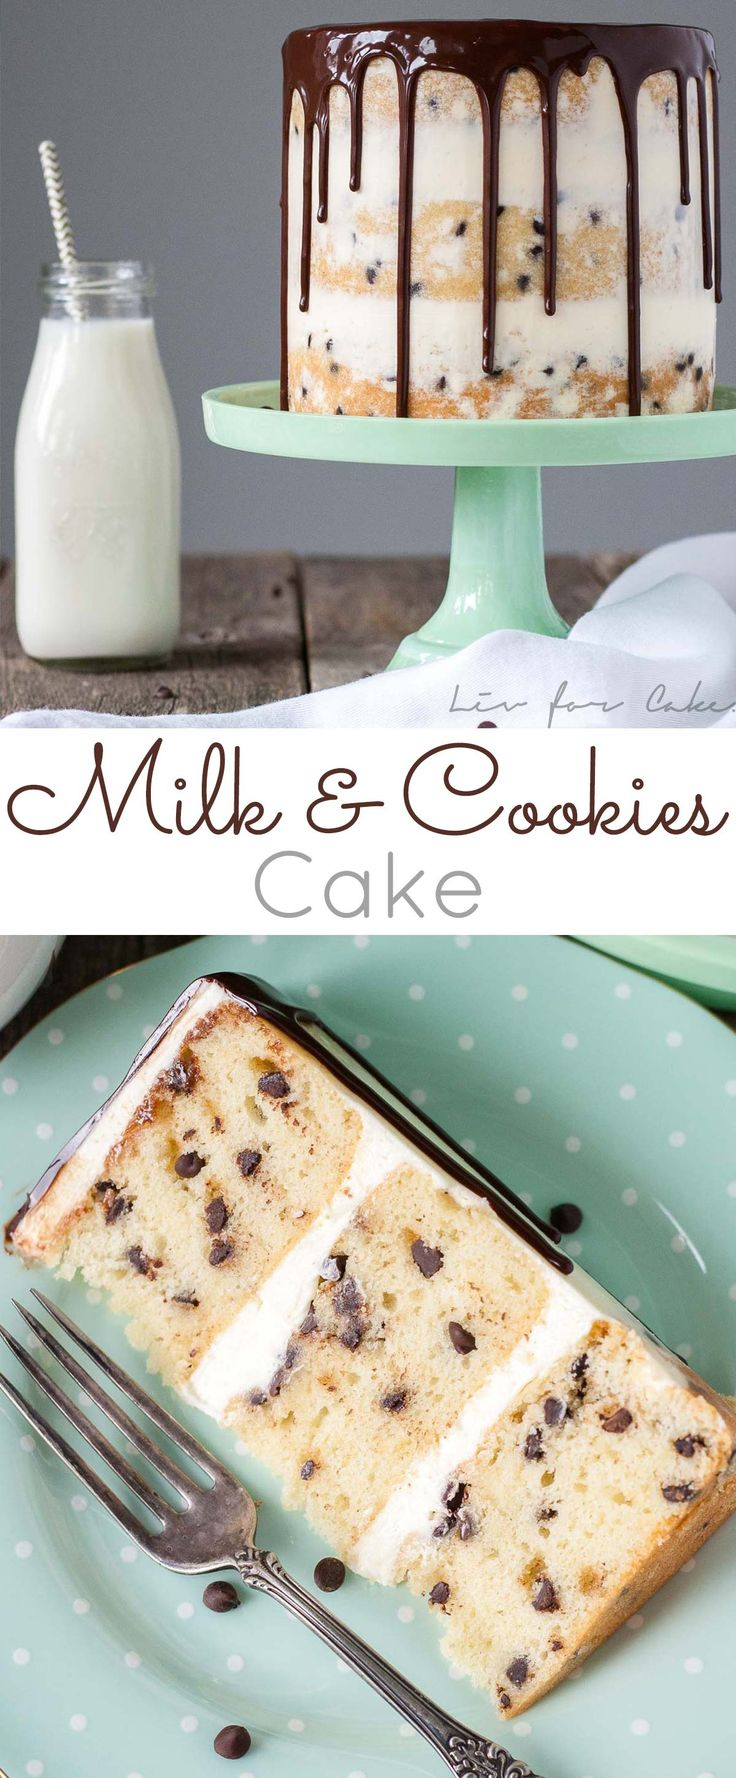 Milk & Cookies Cake! A childhood favorite gets an extreme makeover into this decadent Milk & Cookies Cake! | livforcake.com via @livforcake